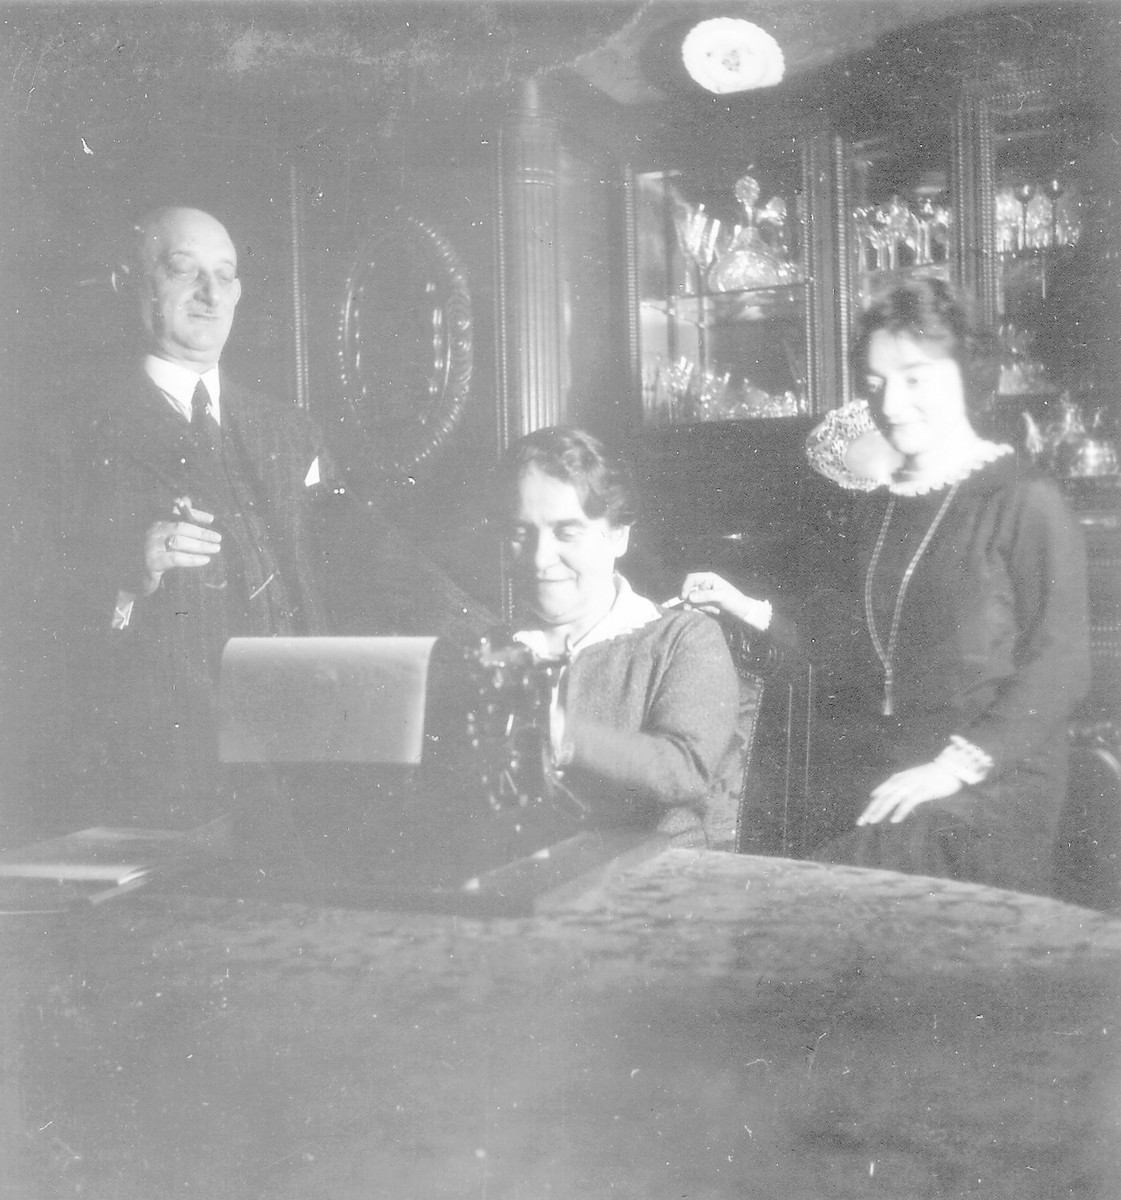 Bertha Rehfisch types at a table at home in Hannover, types with two of her family members beside her.  On the left is her husband Luis Rehfisch and on the right is their oldest daughter Elsbeth.